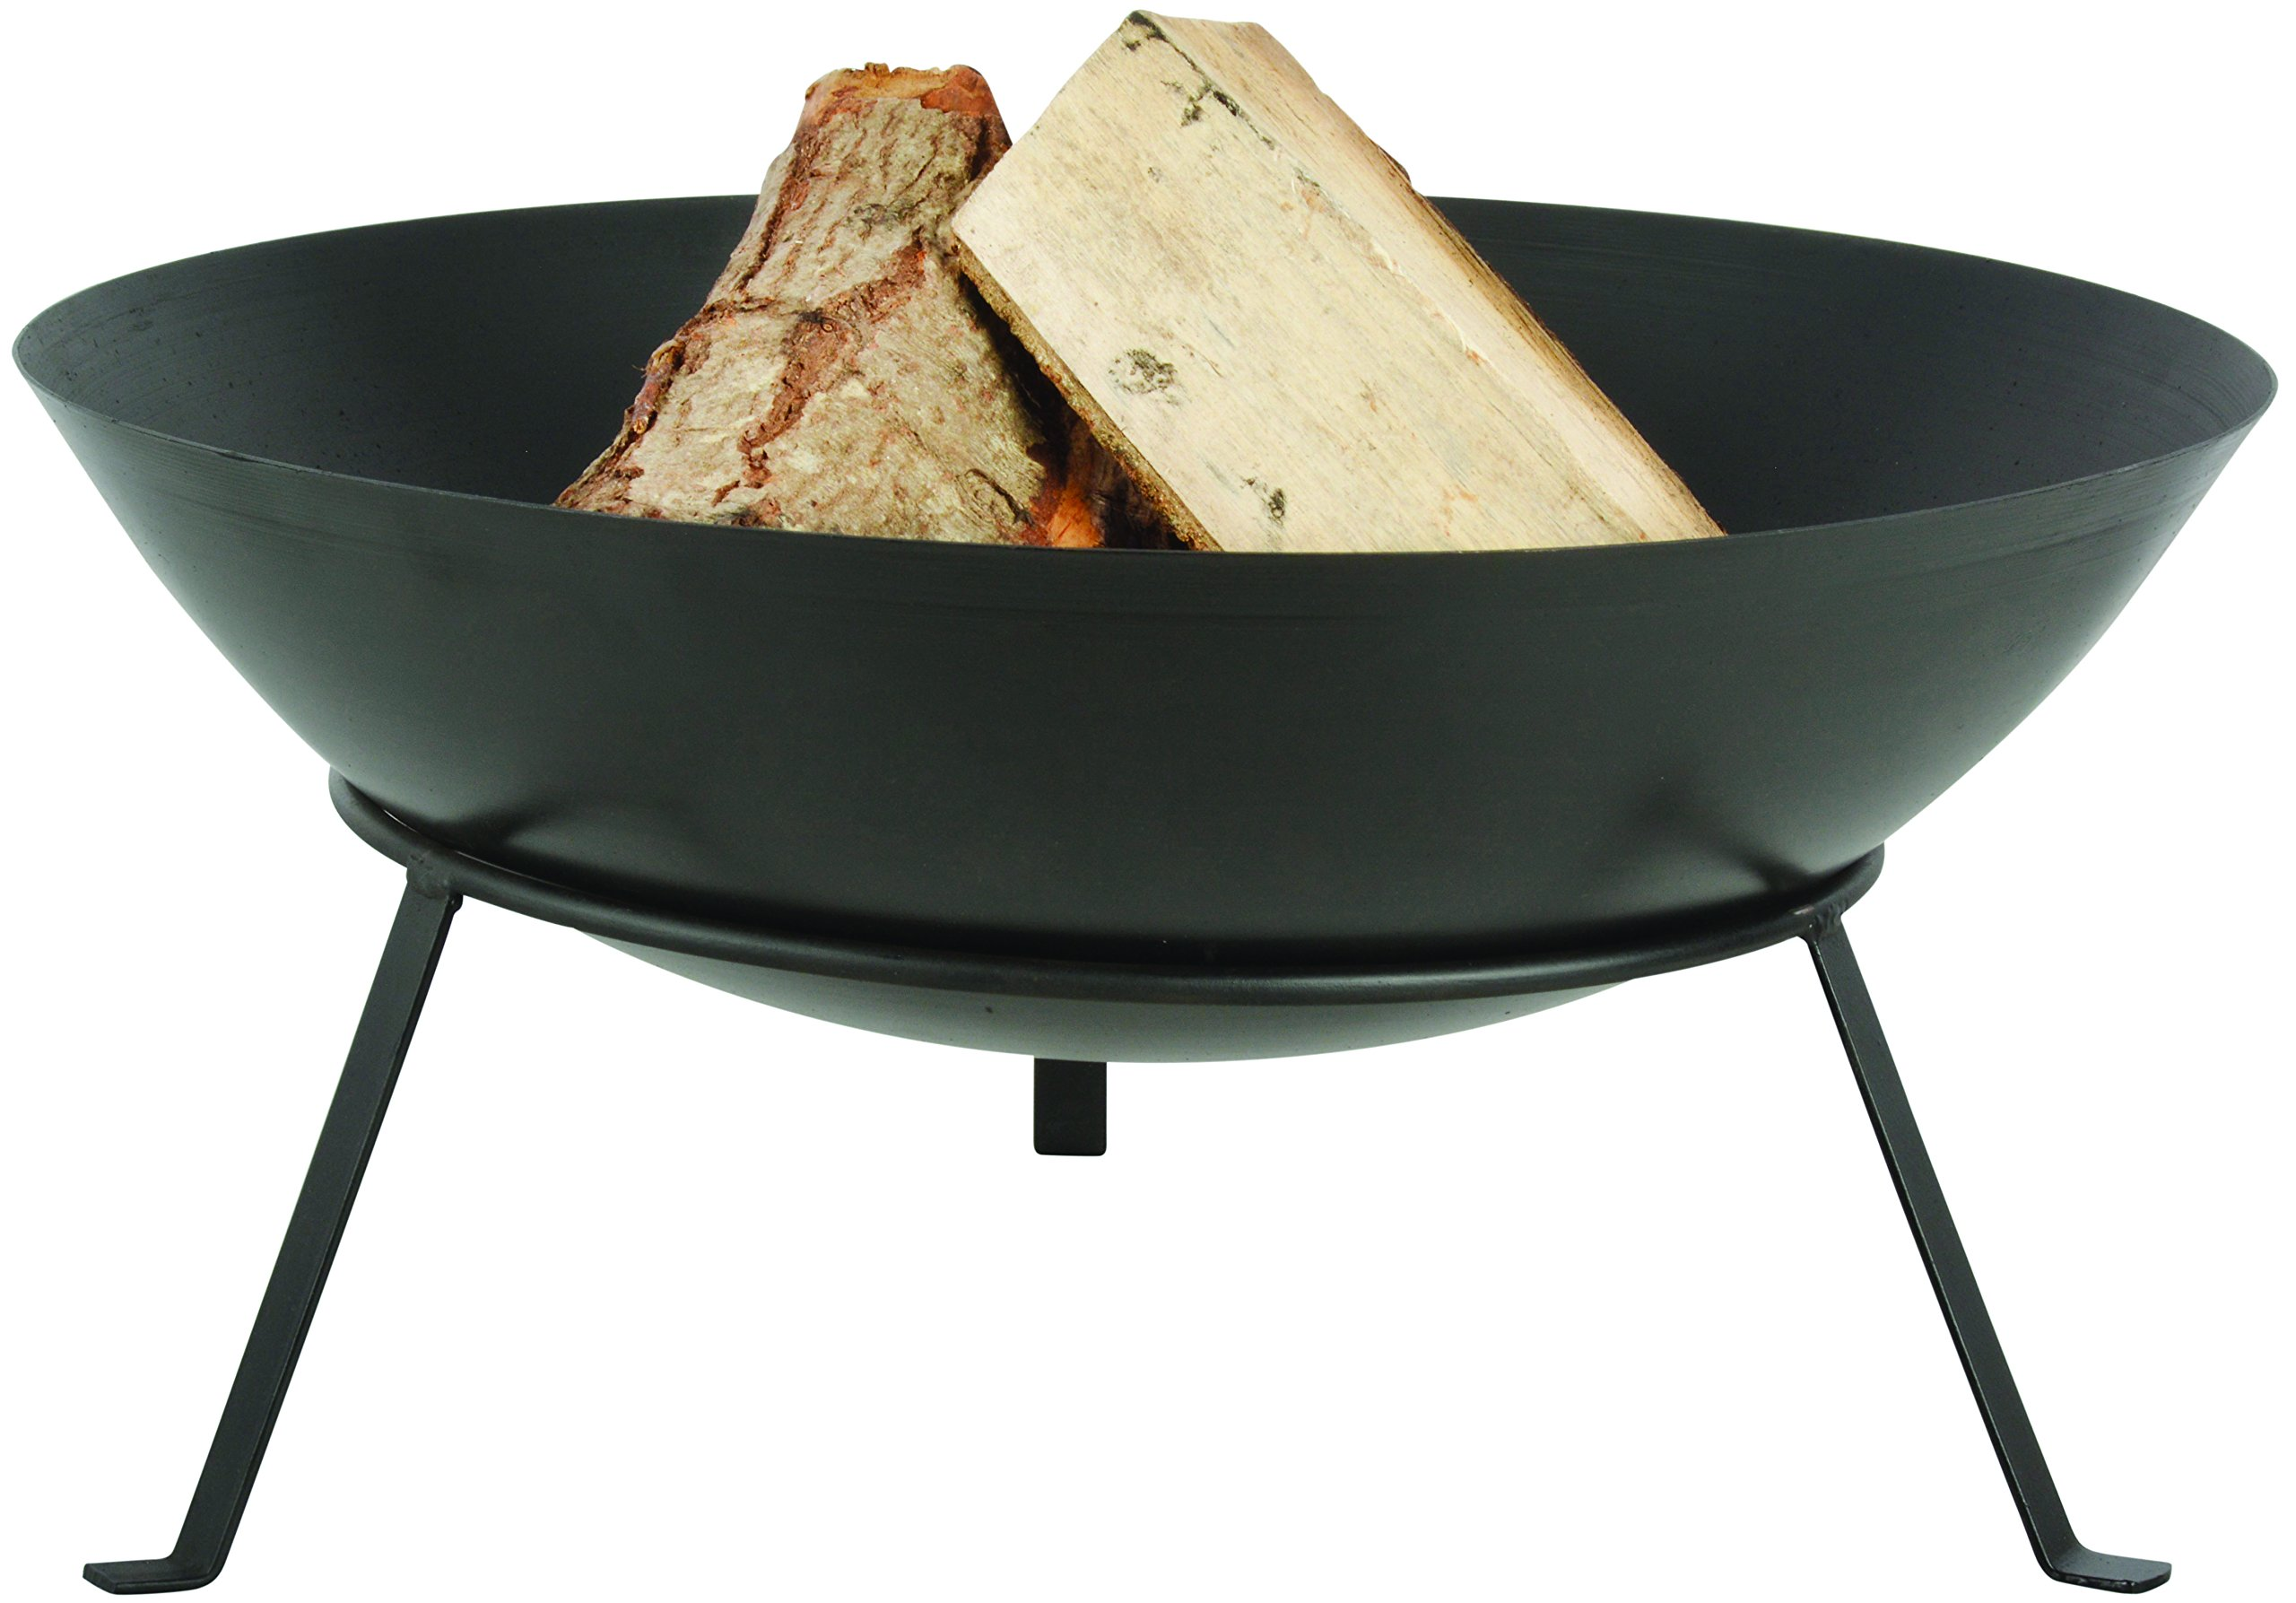 Esschert Design FF267 Series Fire Bowl with Legs - Black metal is perfect for placement outdoors near a garden, patio, or in the yard With this large fire bowl on a stand you can sit around a roaring fire, anywhere, late into the night with friends Black cast iron outdoor bowl - patio, fire-pits-outdoor-fireplaces, outdoor-decor - 816WWw%2Bkm6L -